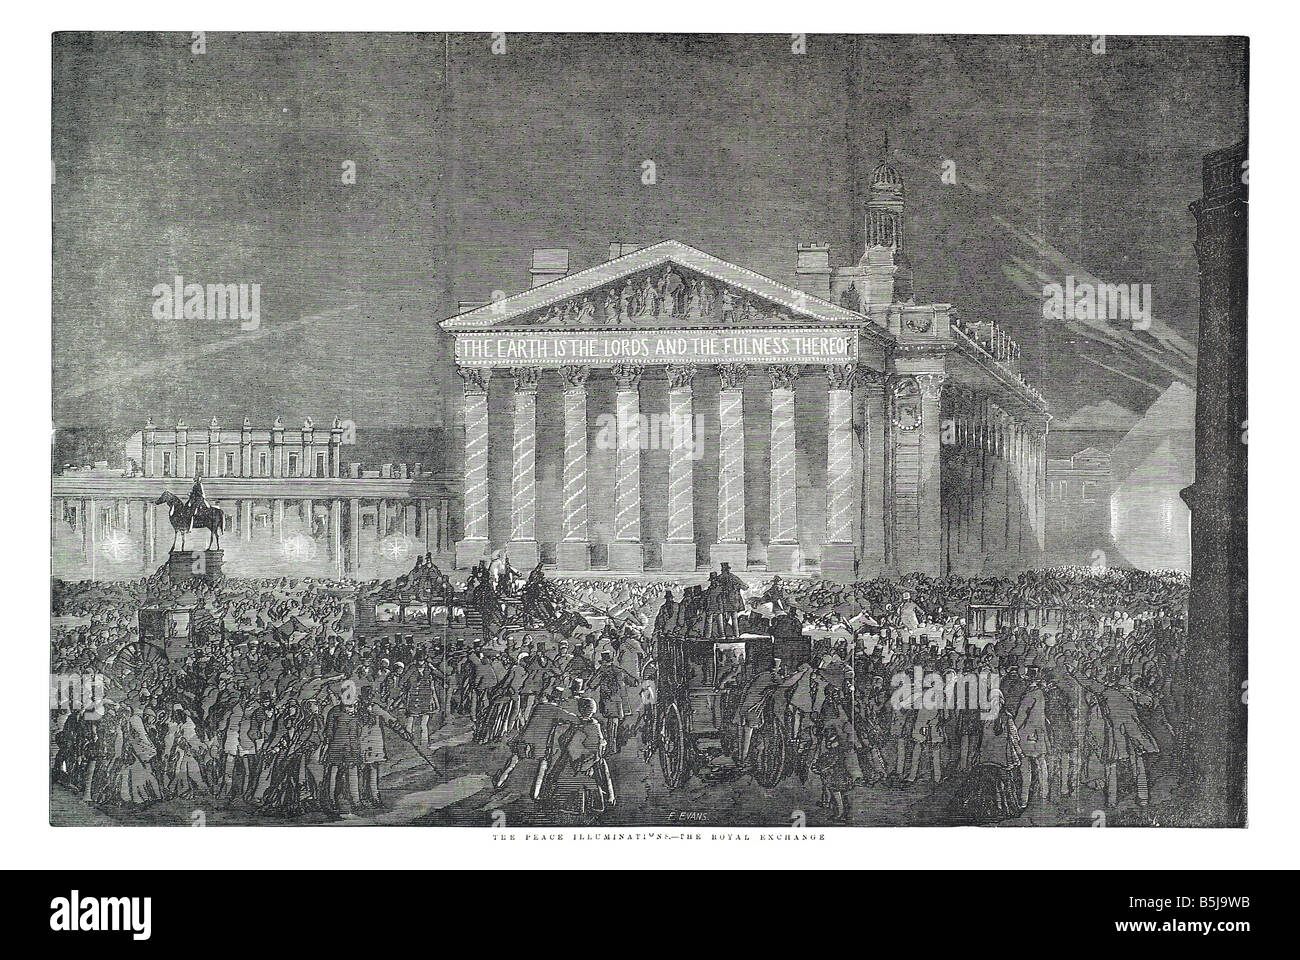 The peace illuminations the royal exchange May 31 1856 The Illustrated London News Page 592 - Stock Image